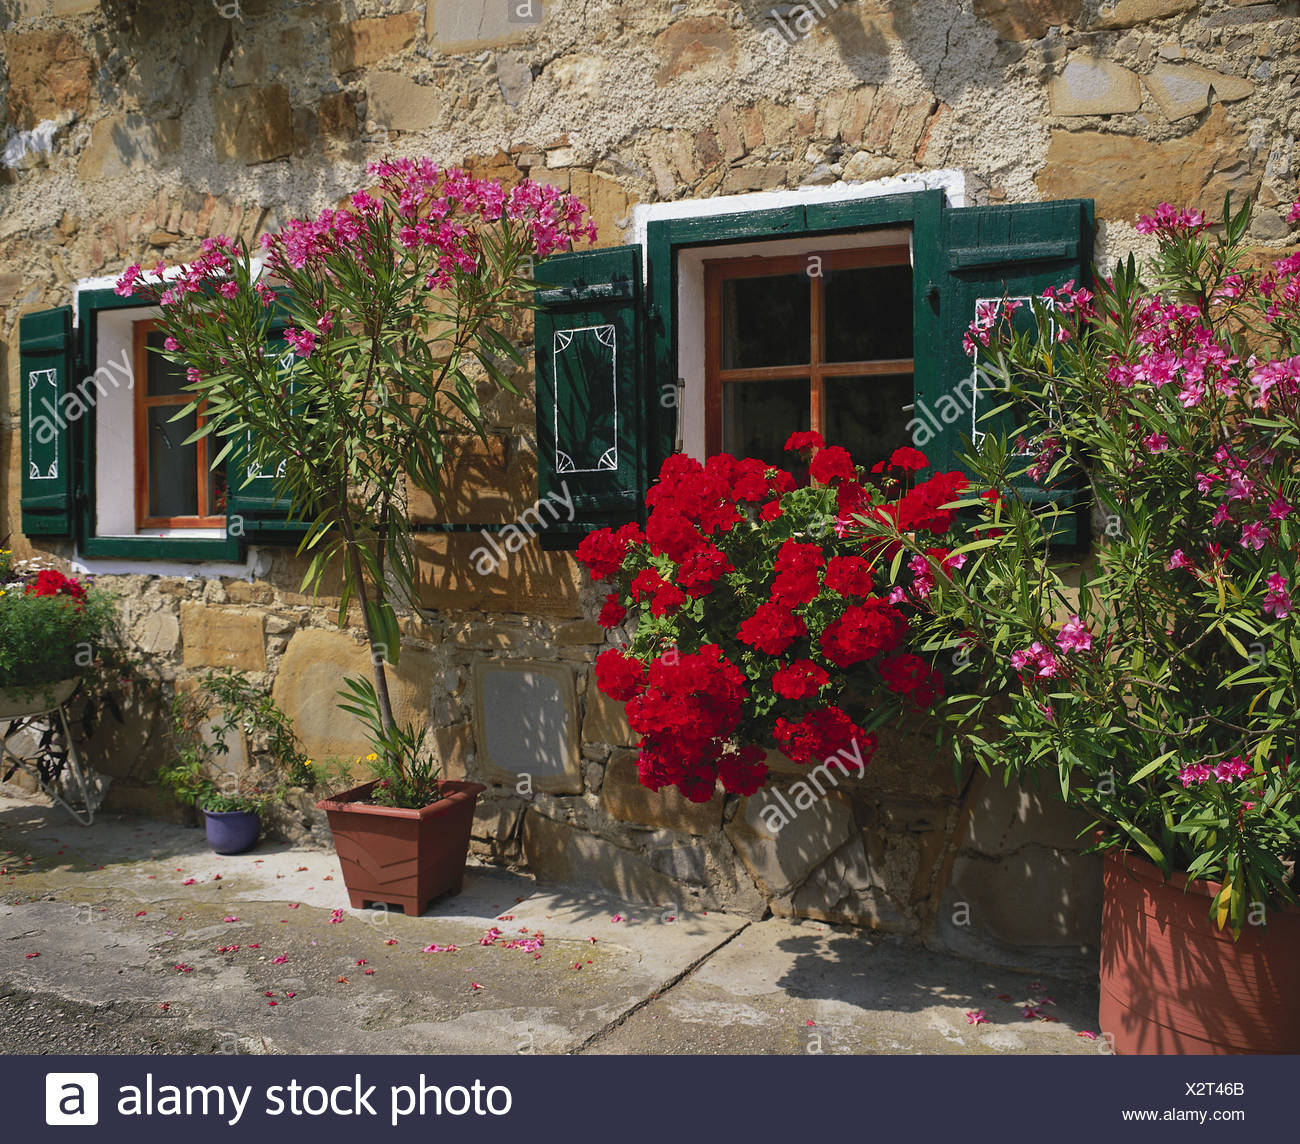 House, facade, flowers, windows, window box, geraniums, flowerpots, oleanders, floral decoration, residential house, stone house, potted plants, summers, - Stock Image